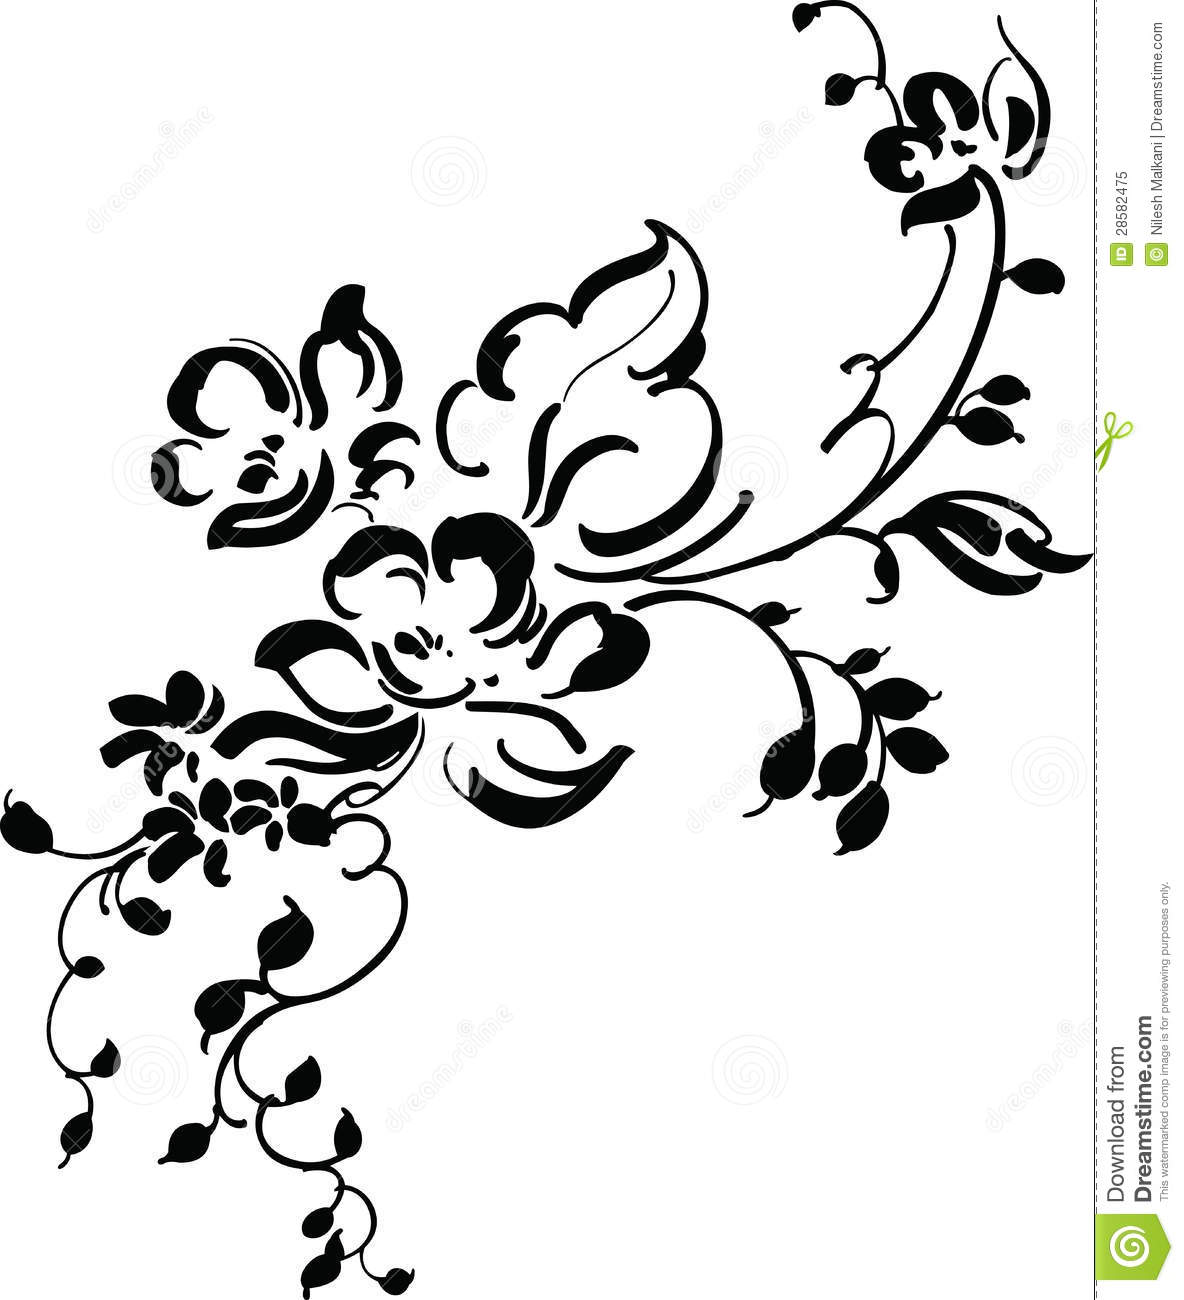 Black and white vintage wallpaper designs white and black wallpaper - Vintage Floral Design Royalty Free Stock Photo Image